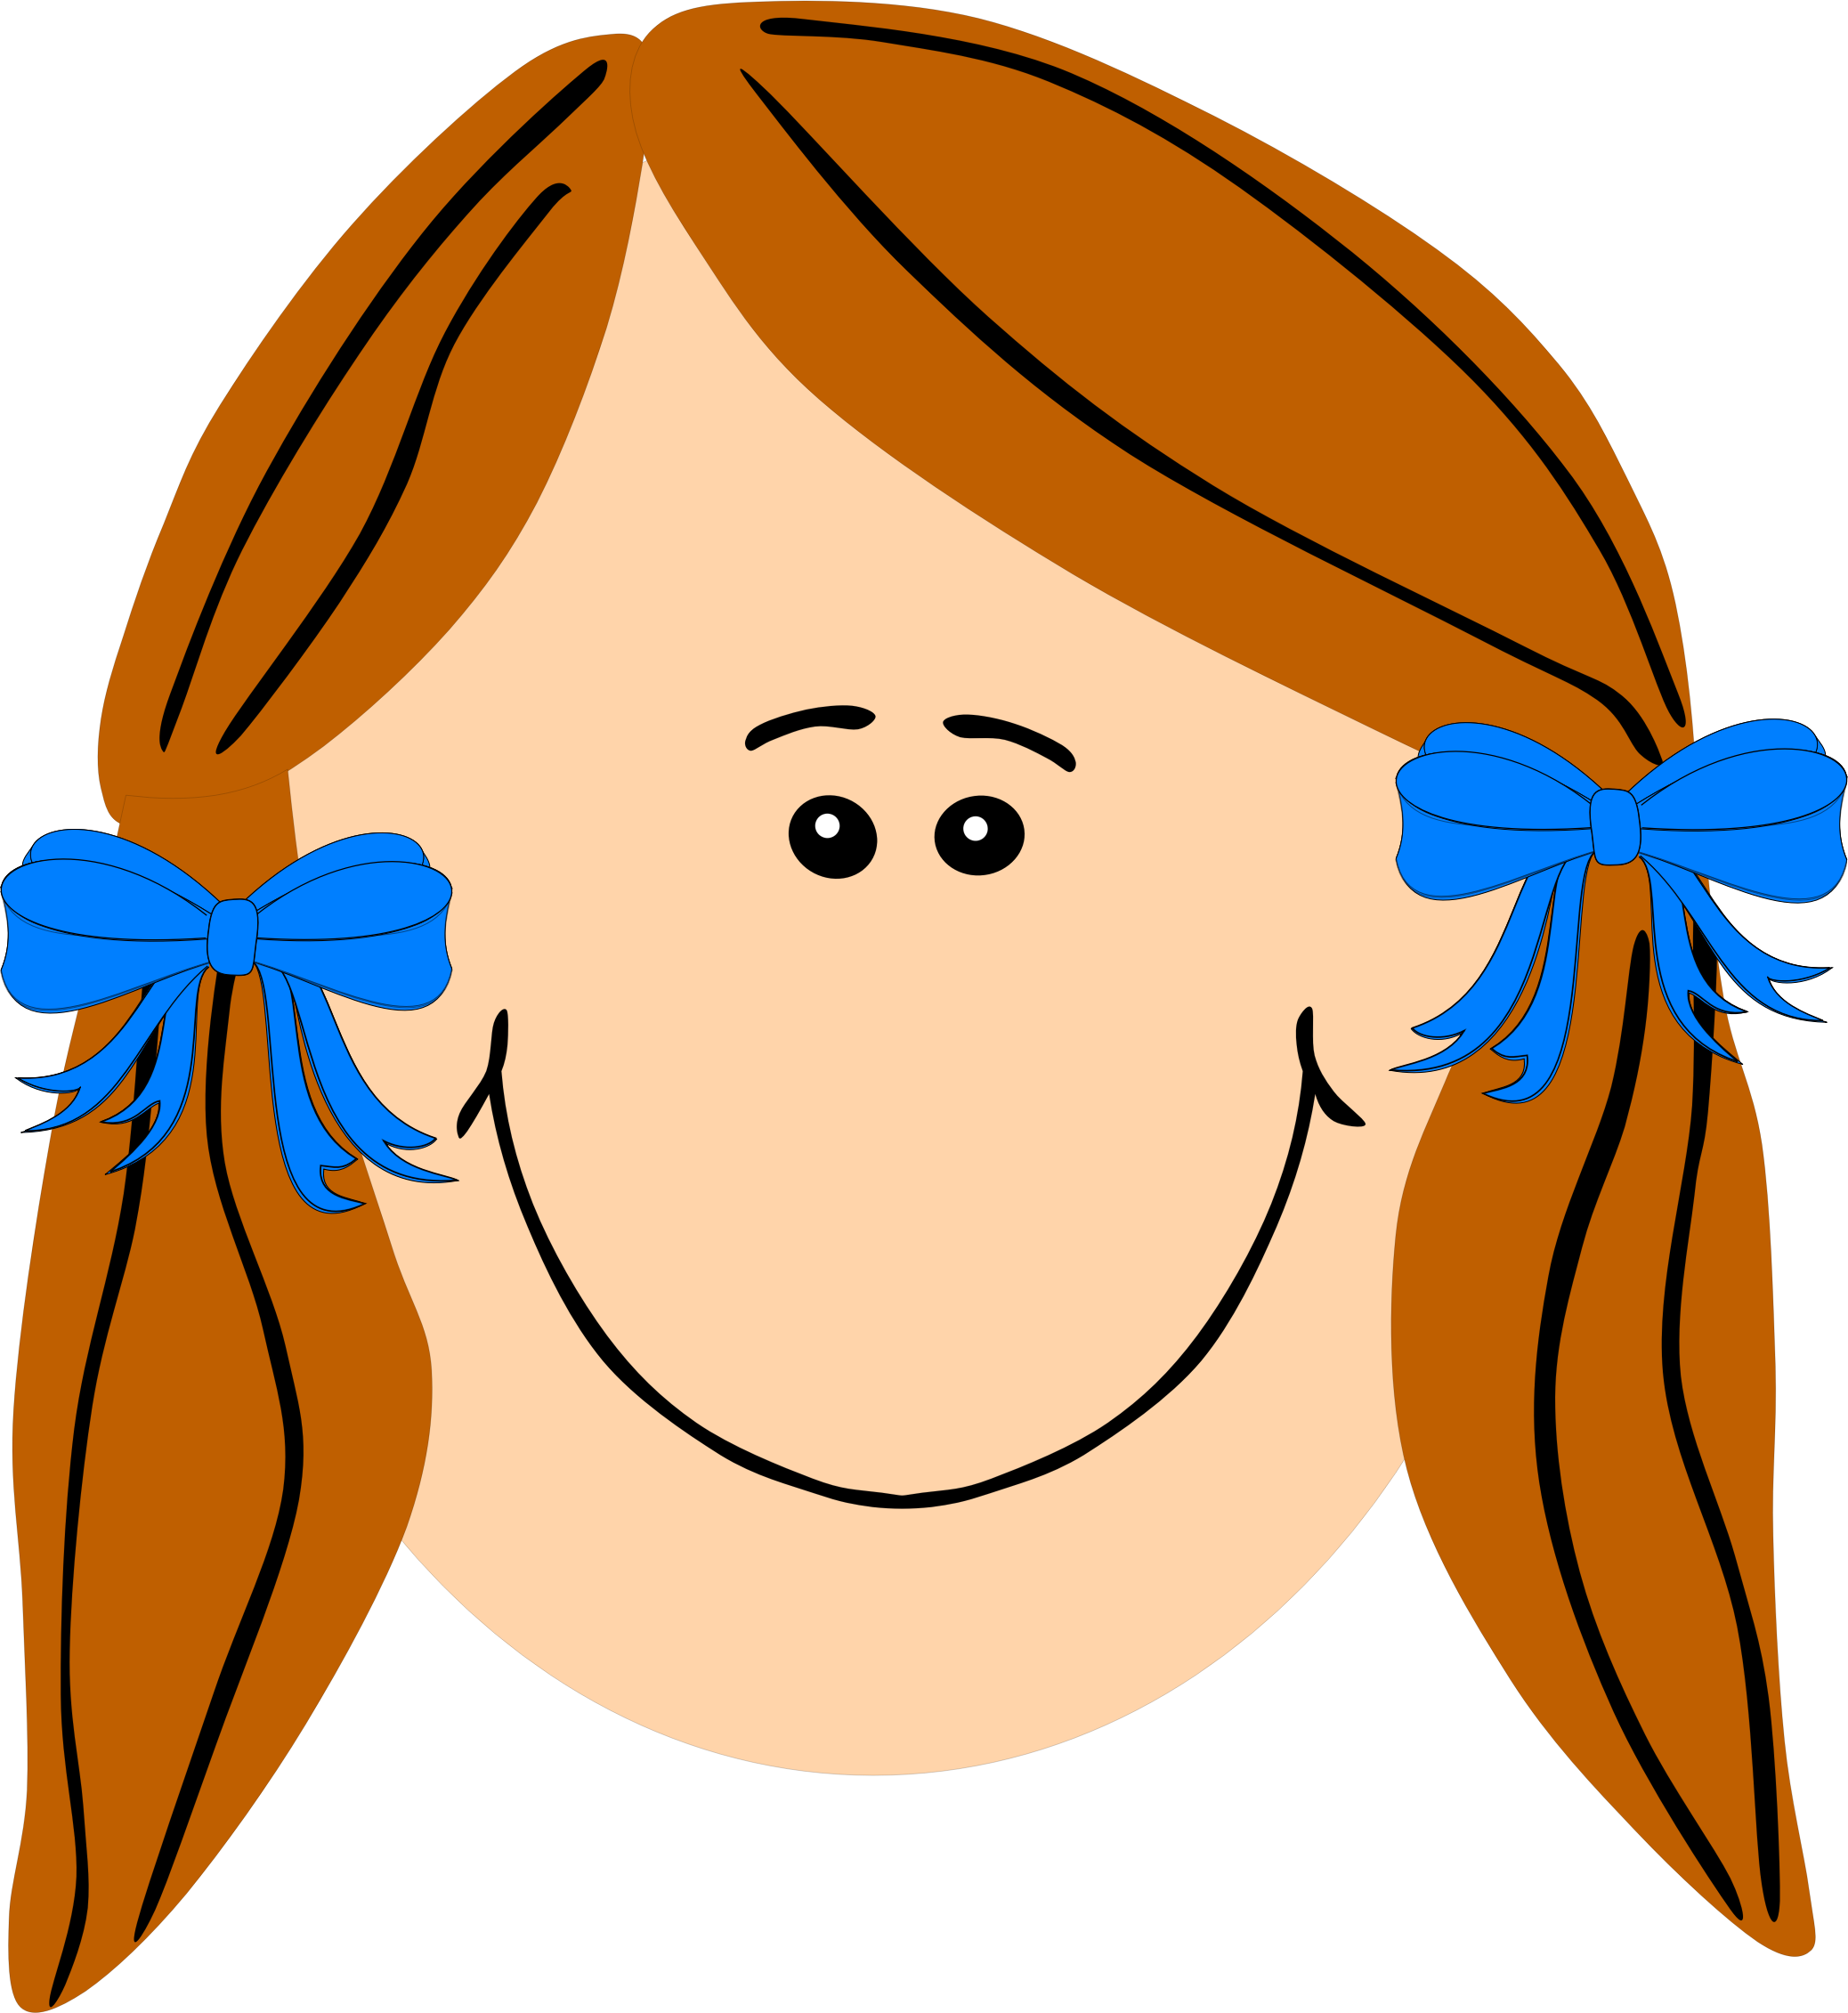 graphic freeuse download Girl Crying Clipart at GetDrawings